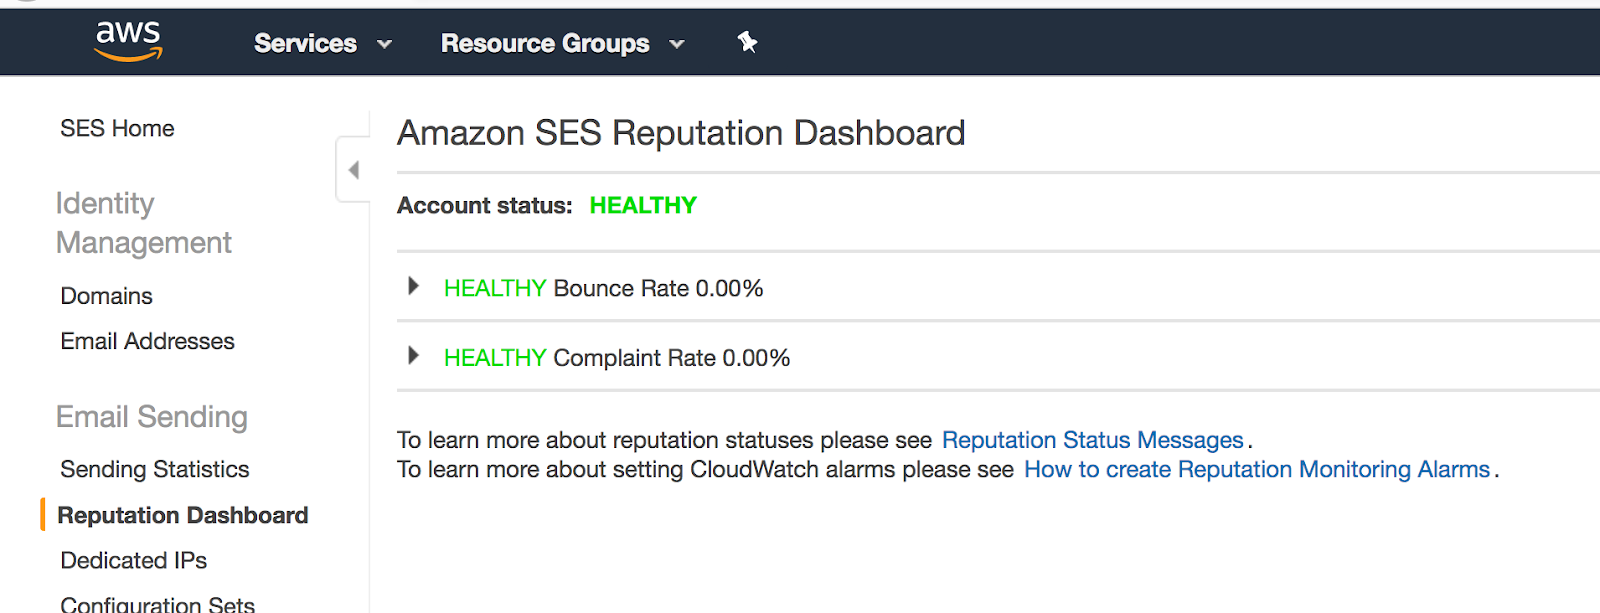 Amazon SES Email Reputation Dashboard